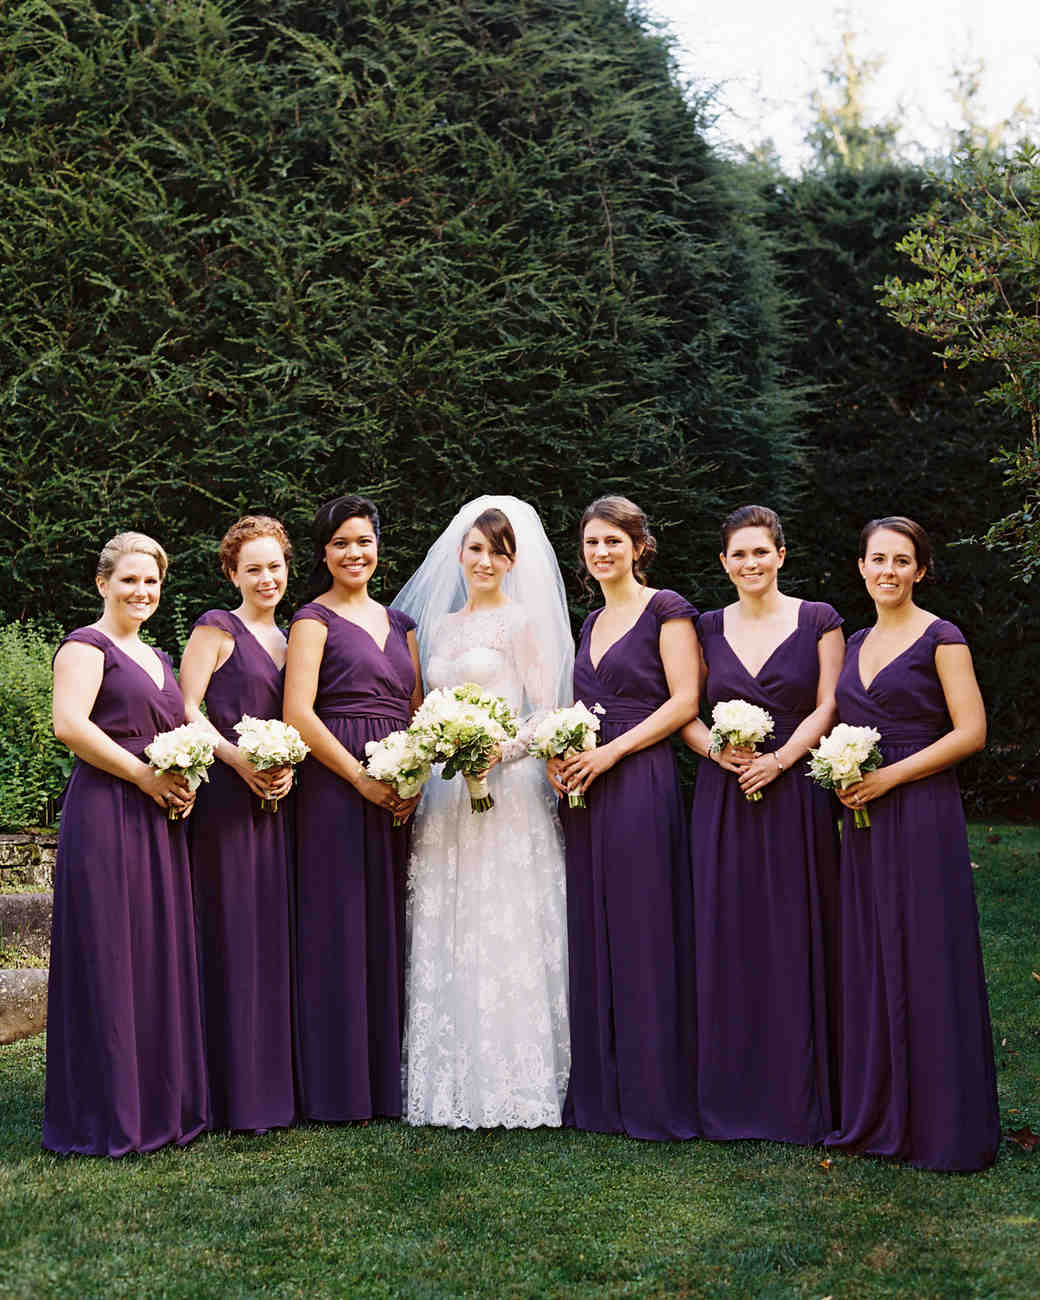 sarah-david-wedding-maids-0414.jpg